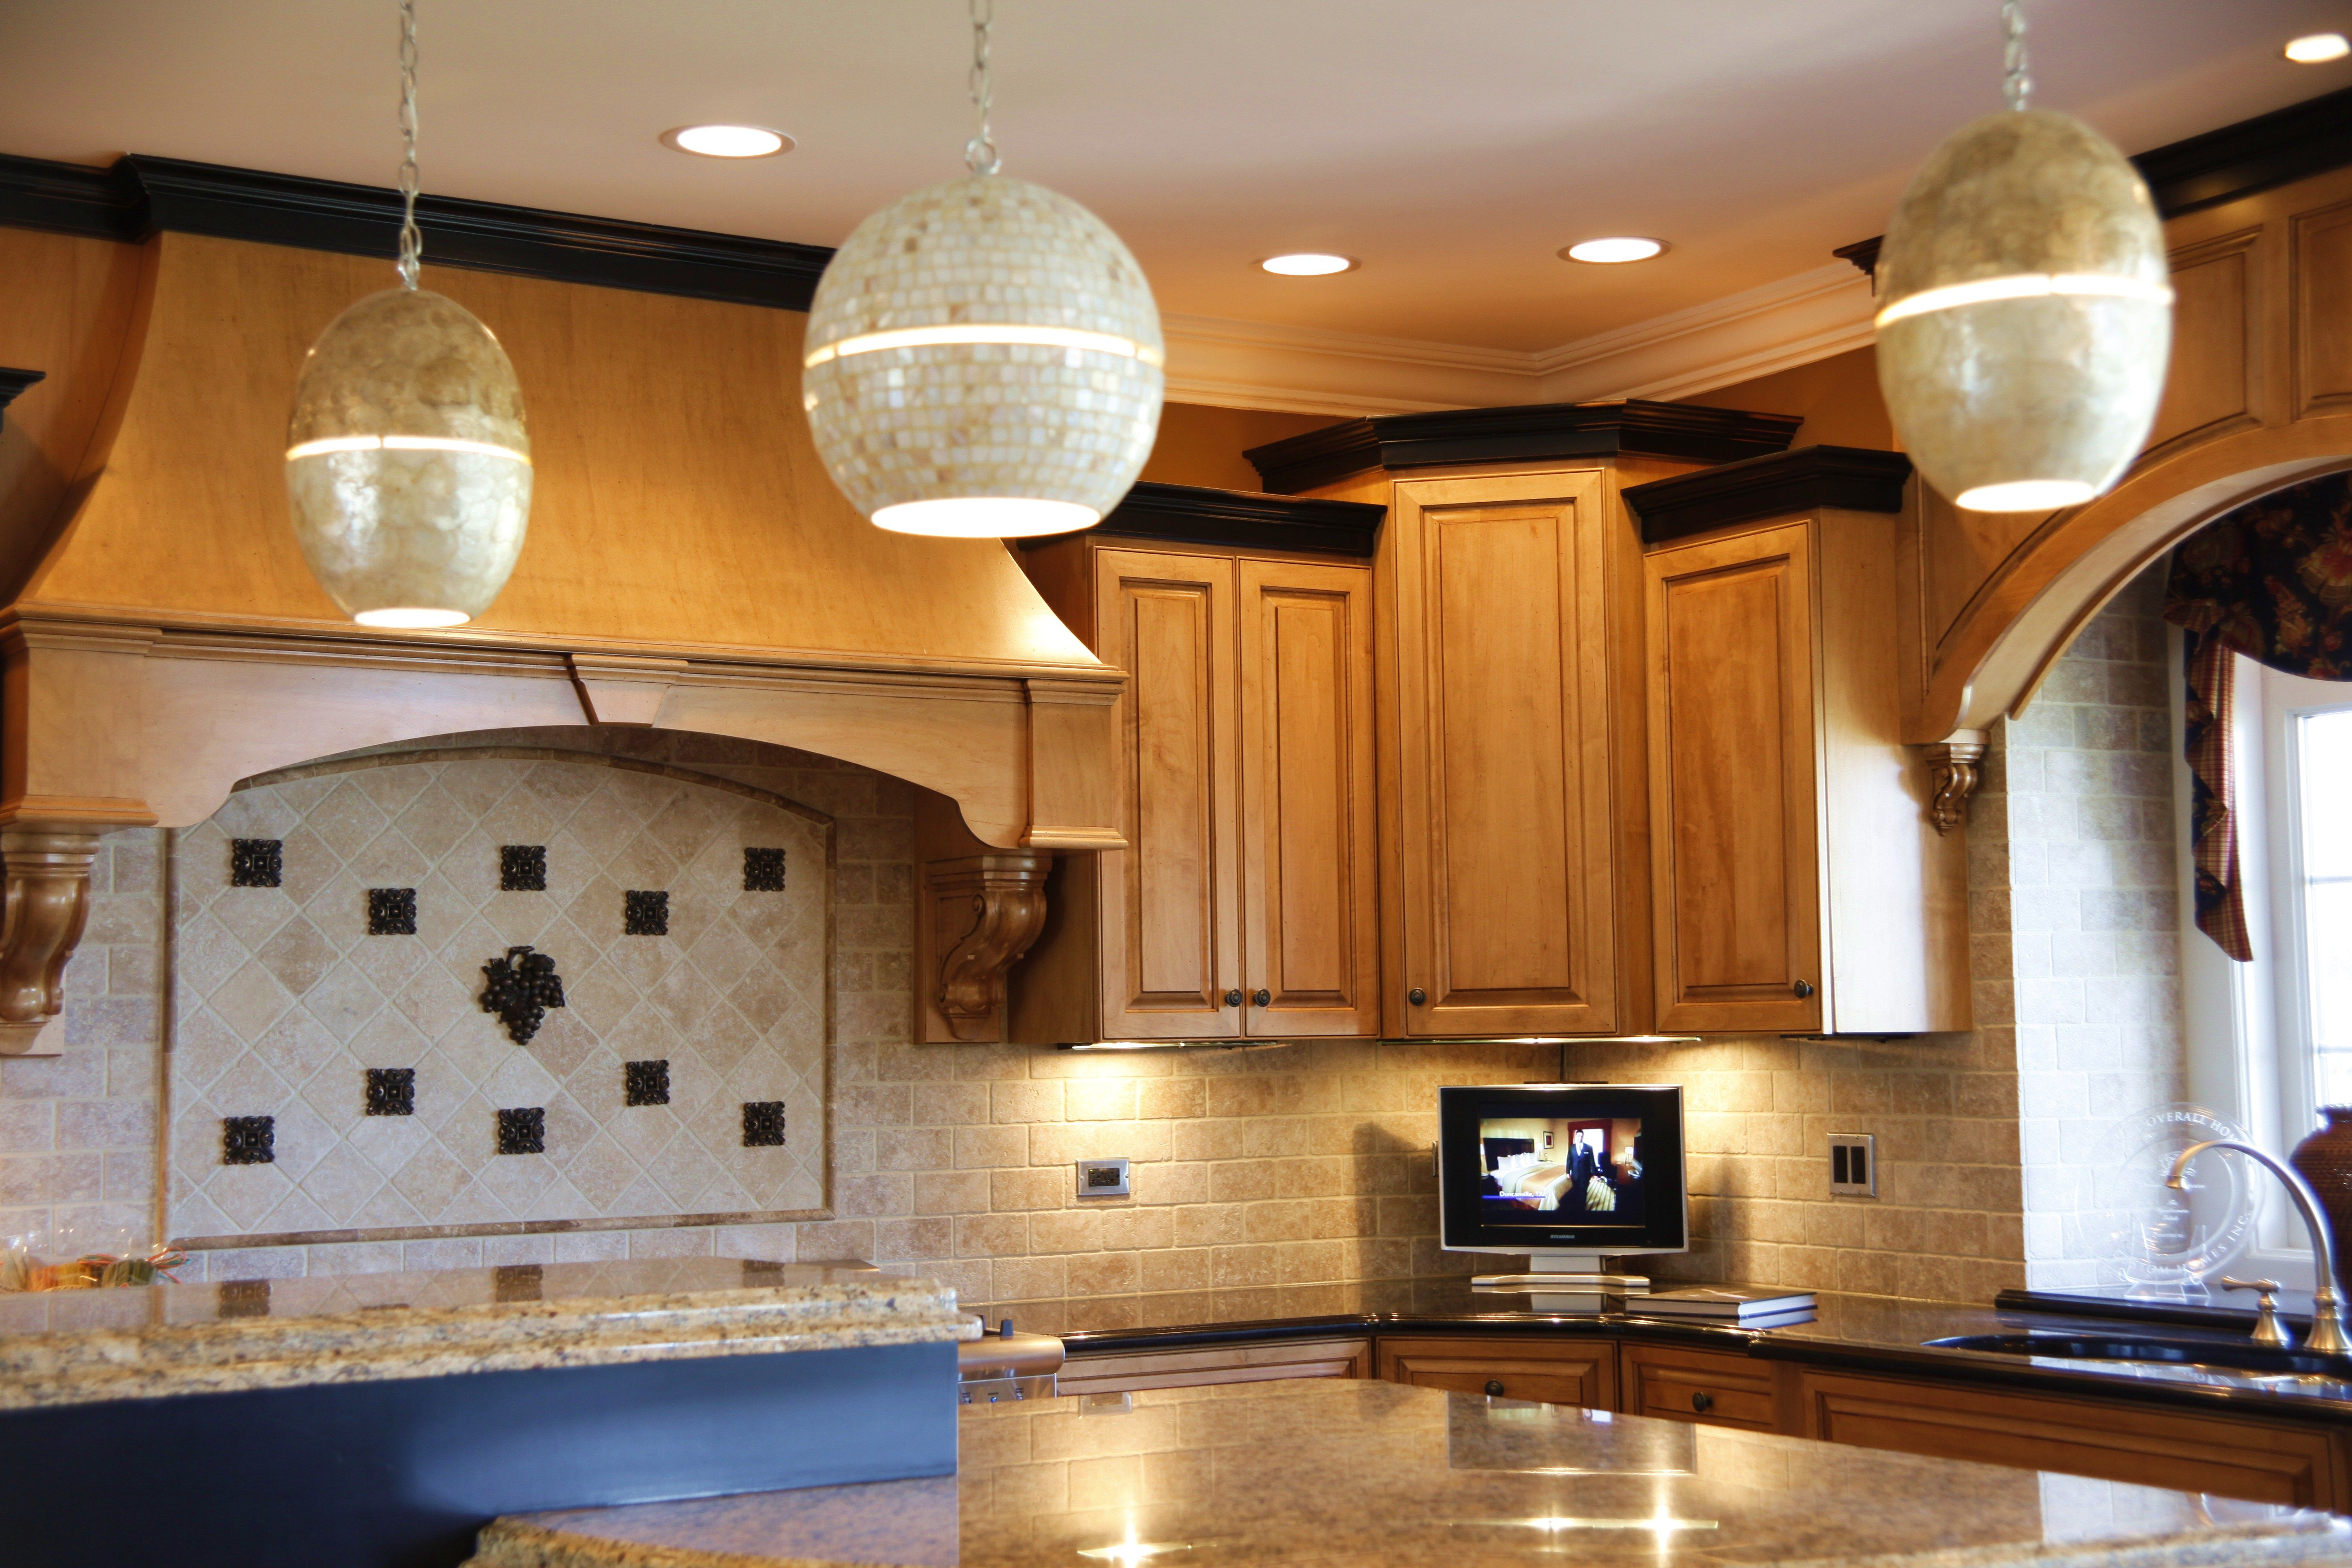 The Lighting Really Makes This Kitchen Shine Lighting Package In This Home Includes Our Under Cabinet Lighting Elegant Kitchen Design Above Cabinets Kitchen